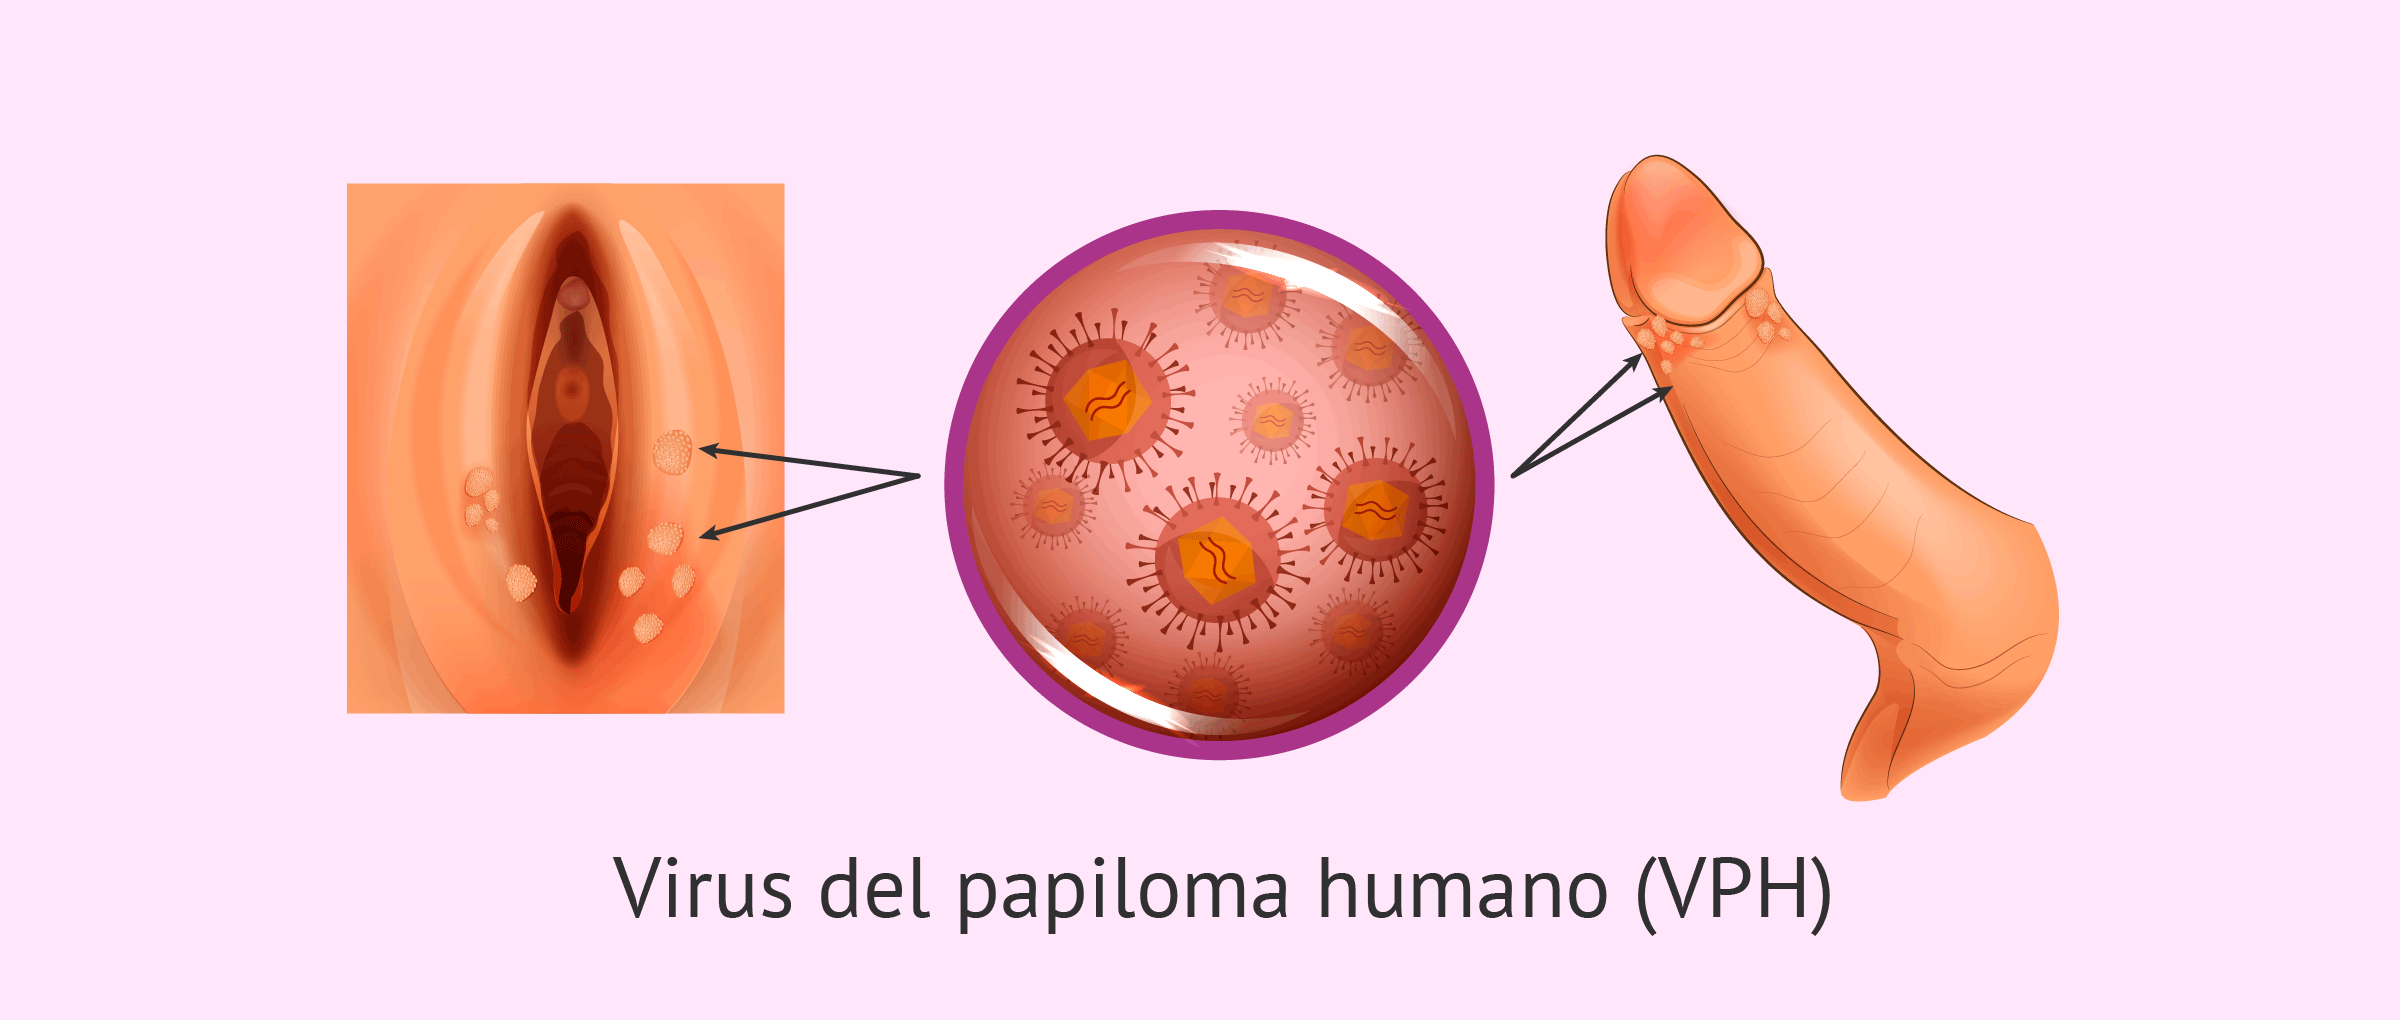 contagio da papilloma virus anthelmintic drugs in man